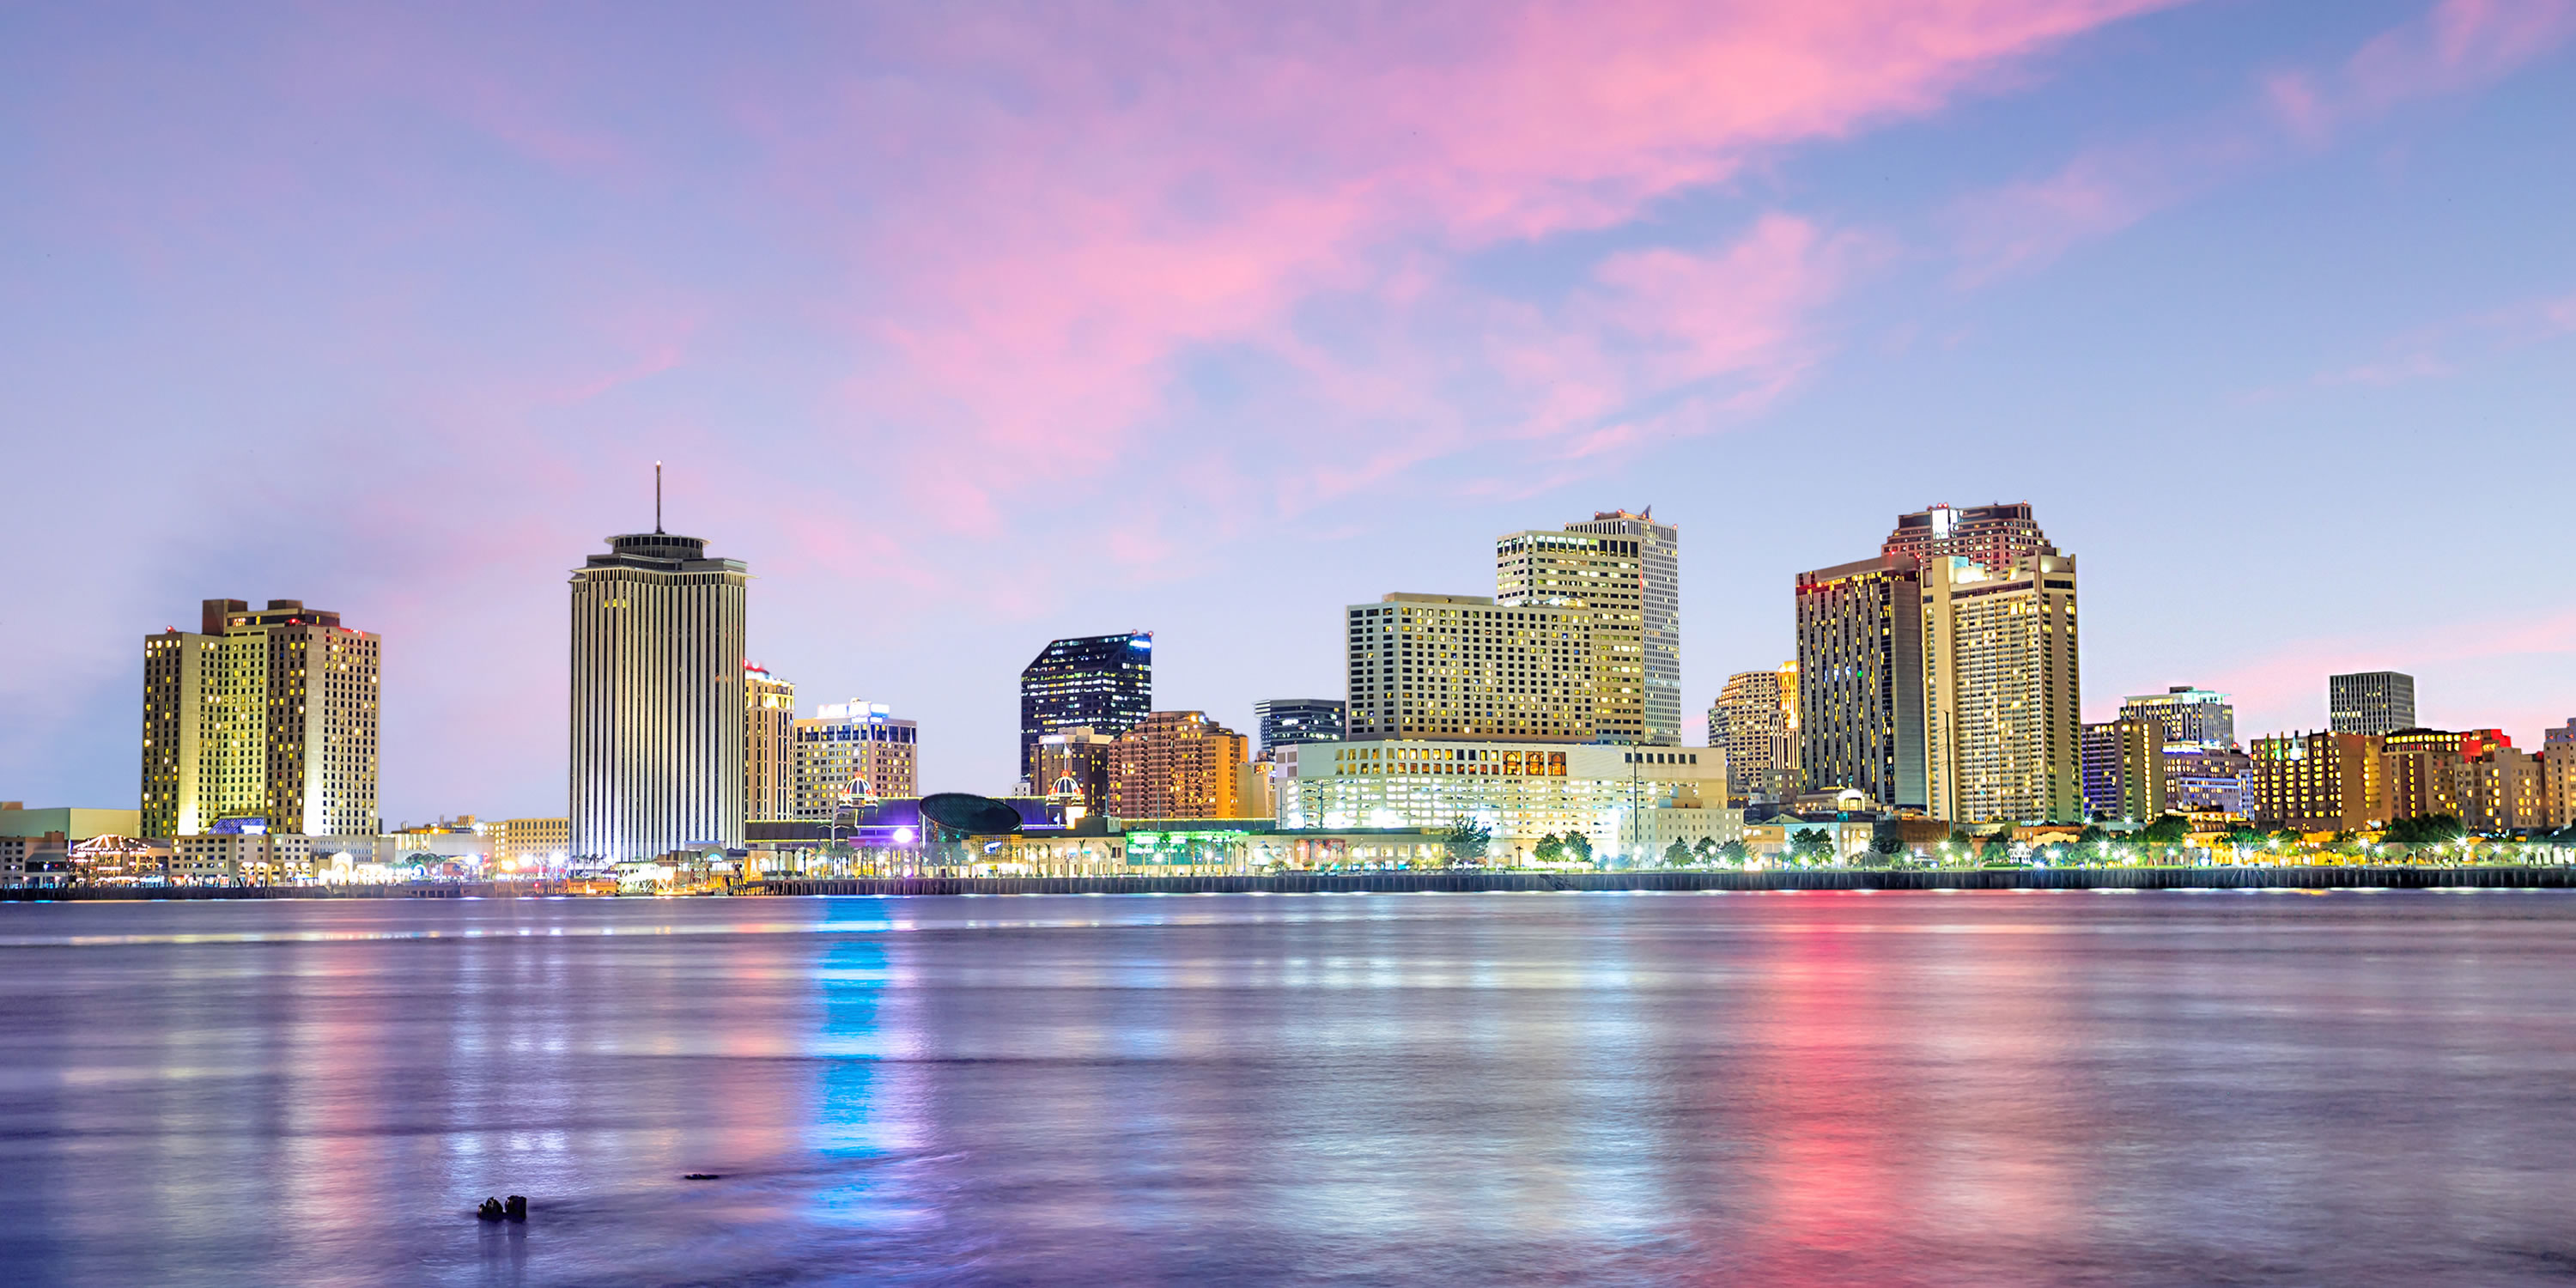 the Hilton New Orleans Riverside in New Orleans, Louisiana